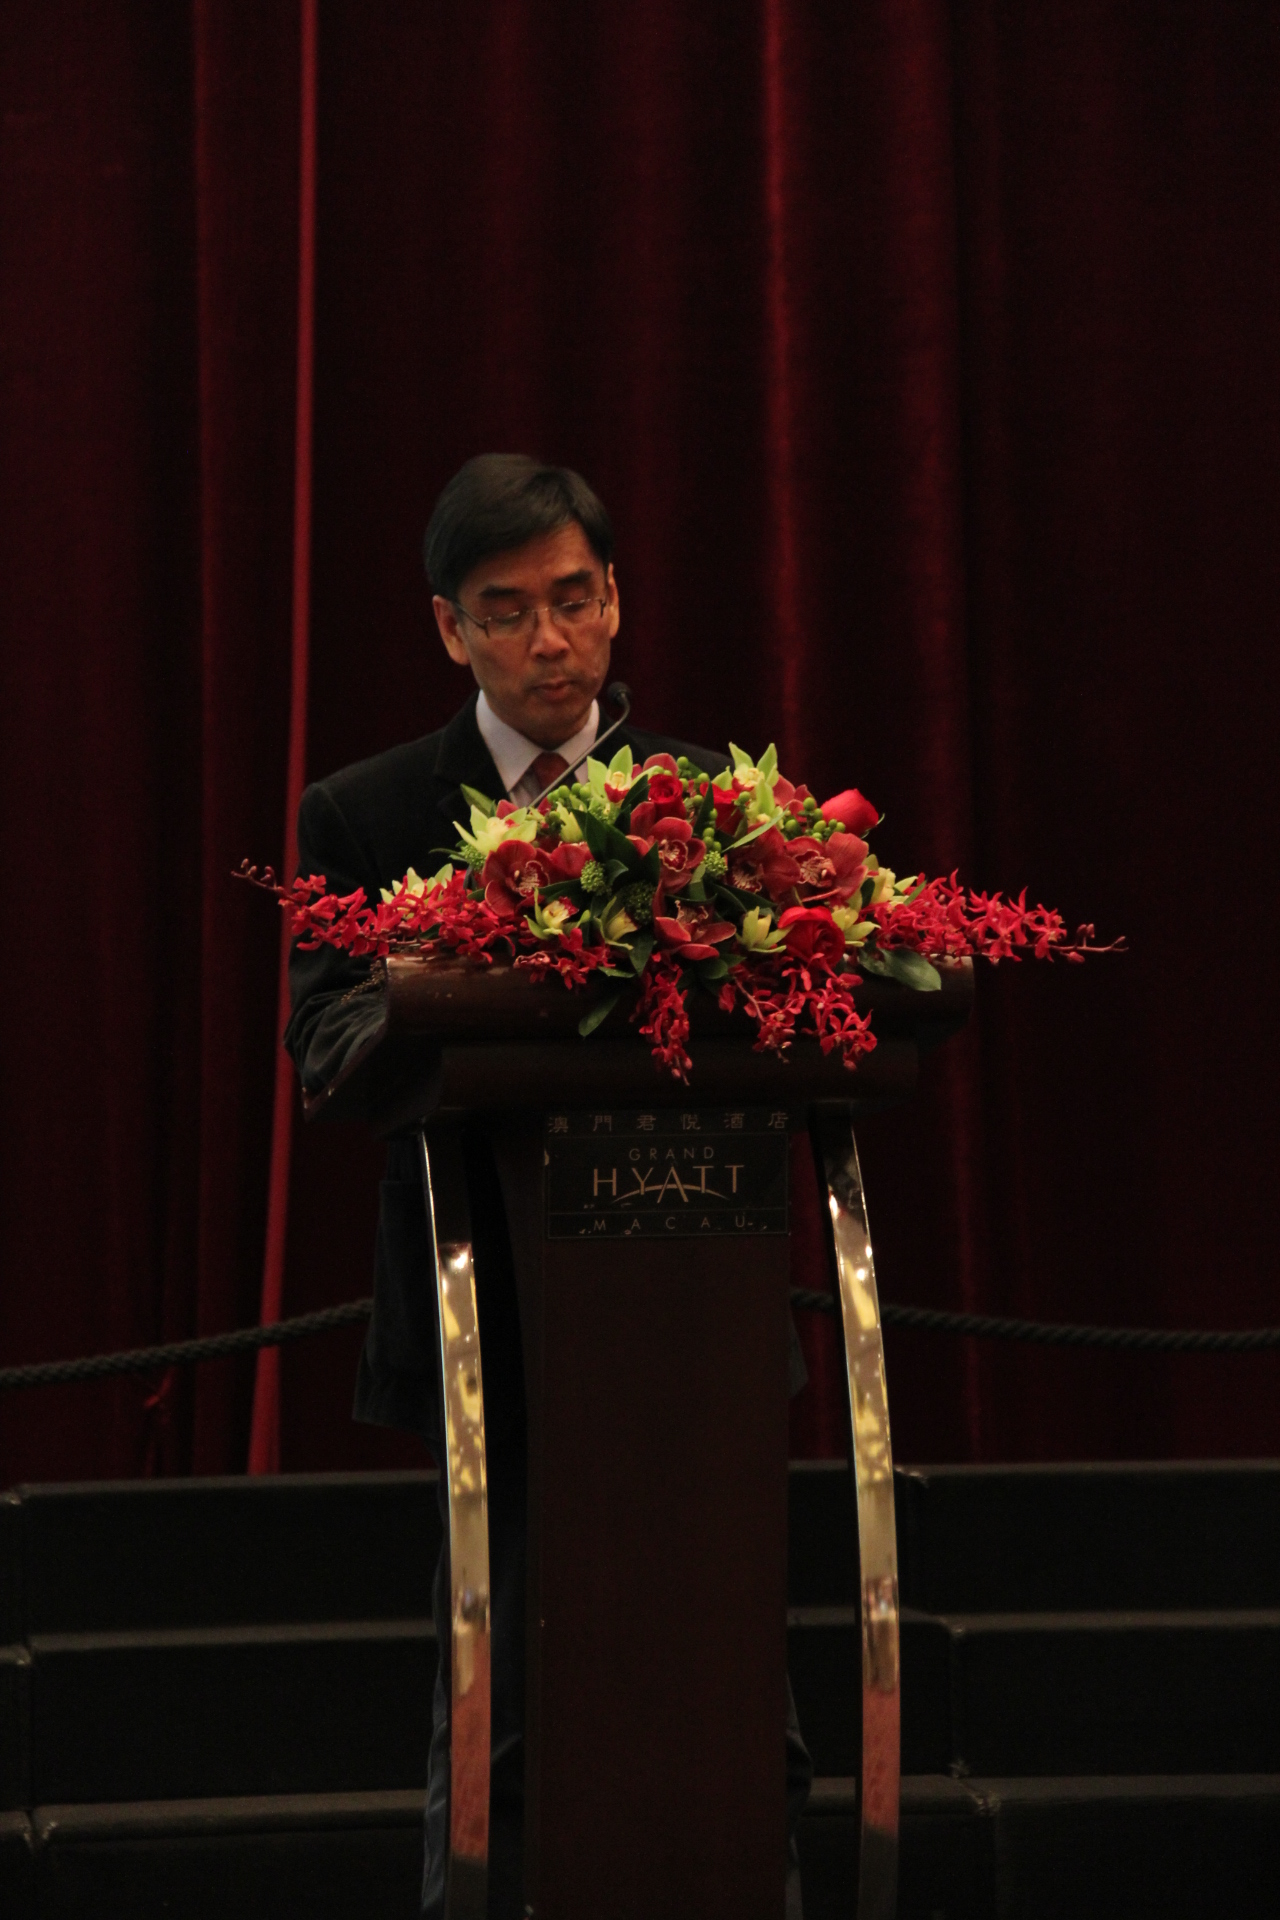 . Opening remarks by East Asia College Master Prof. Iu Vai Pan